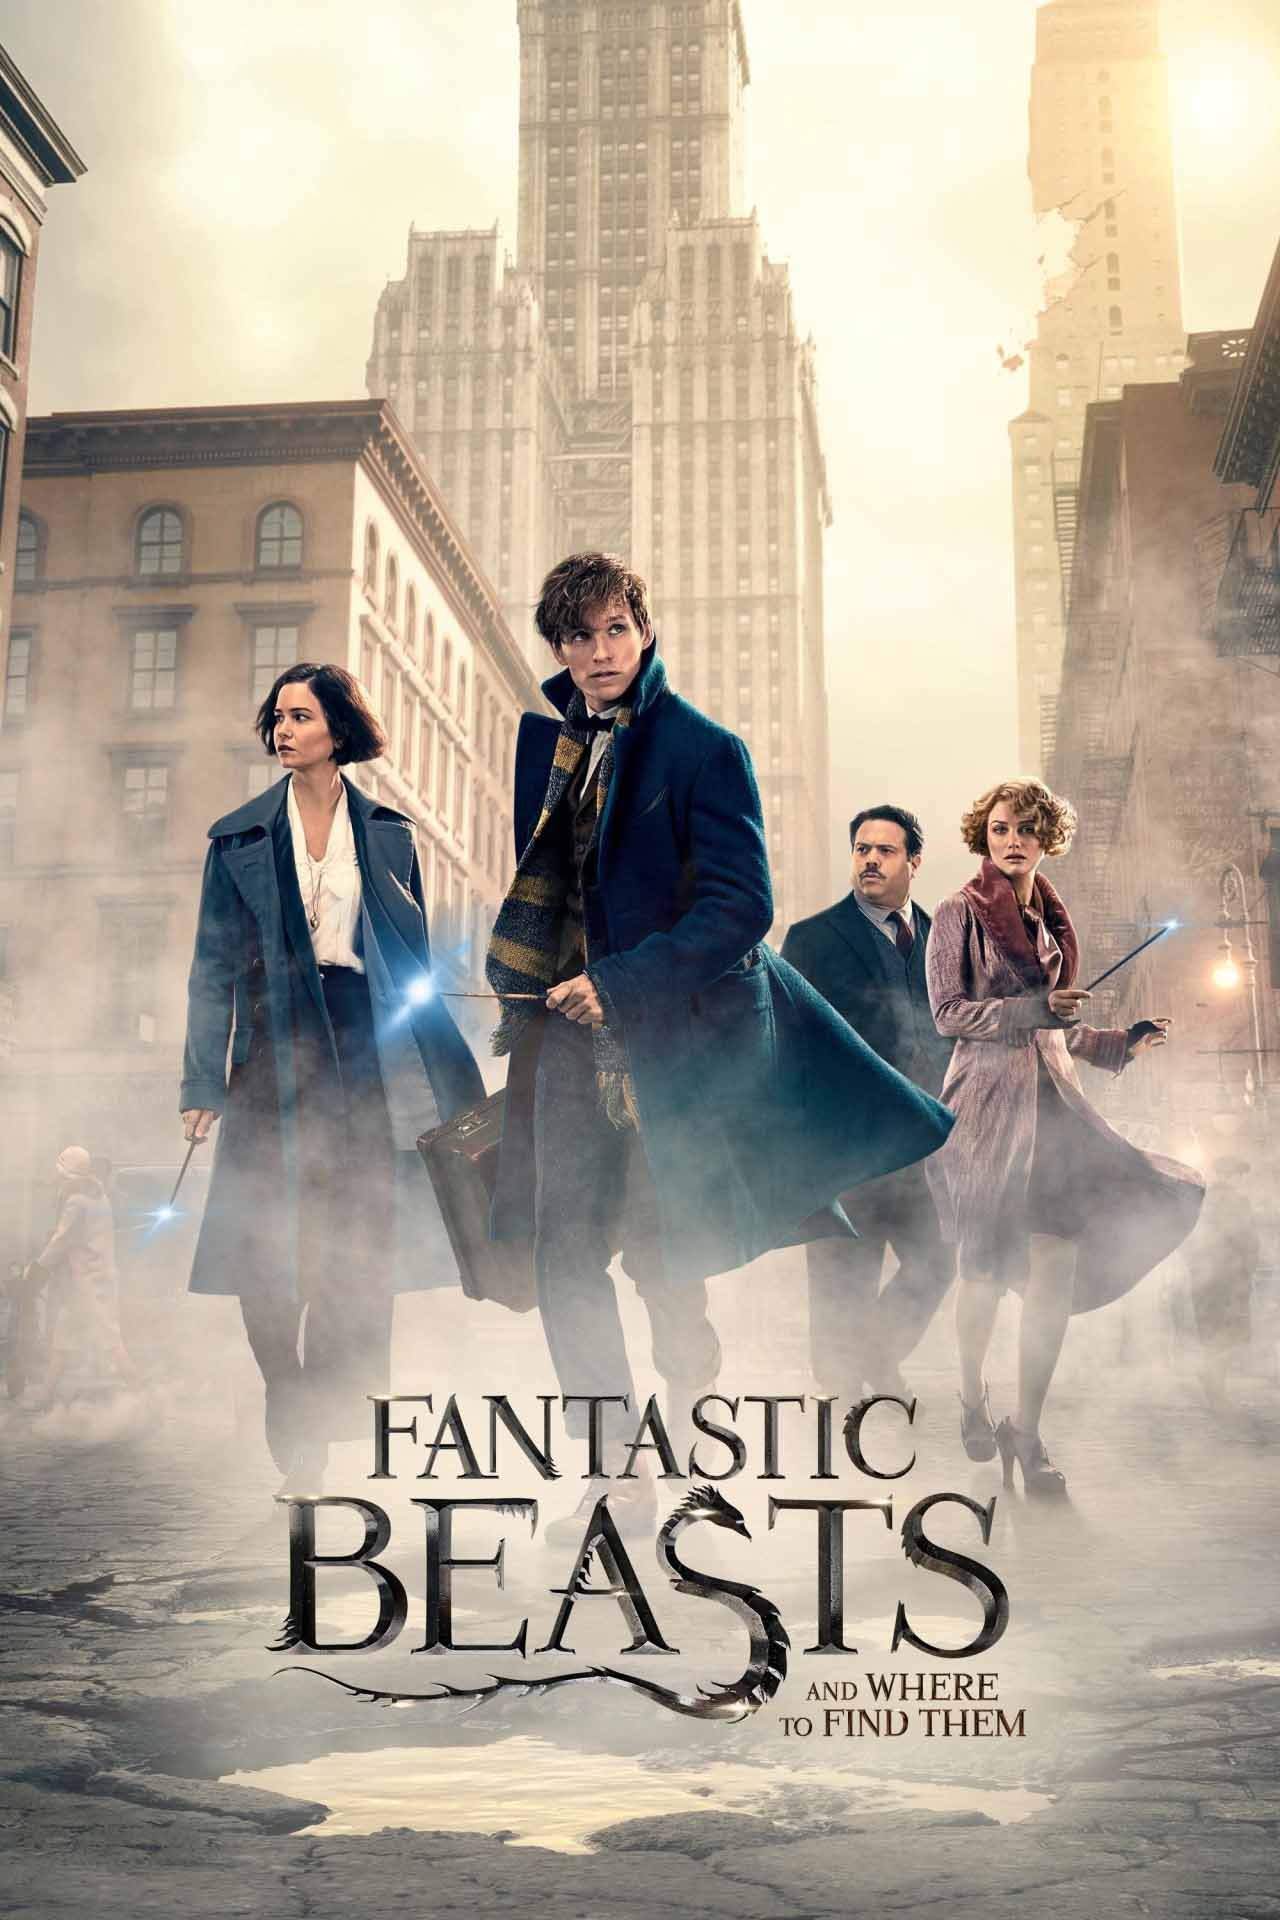 Image result for fantastic beasts and where to find them movie poster